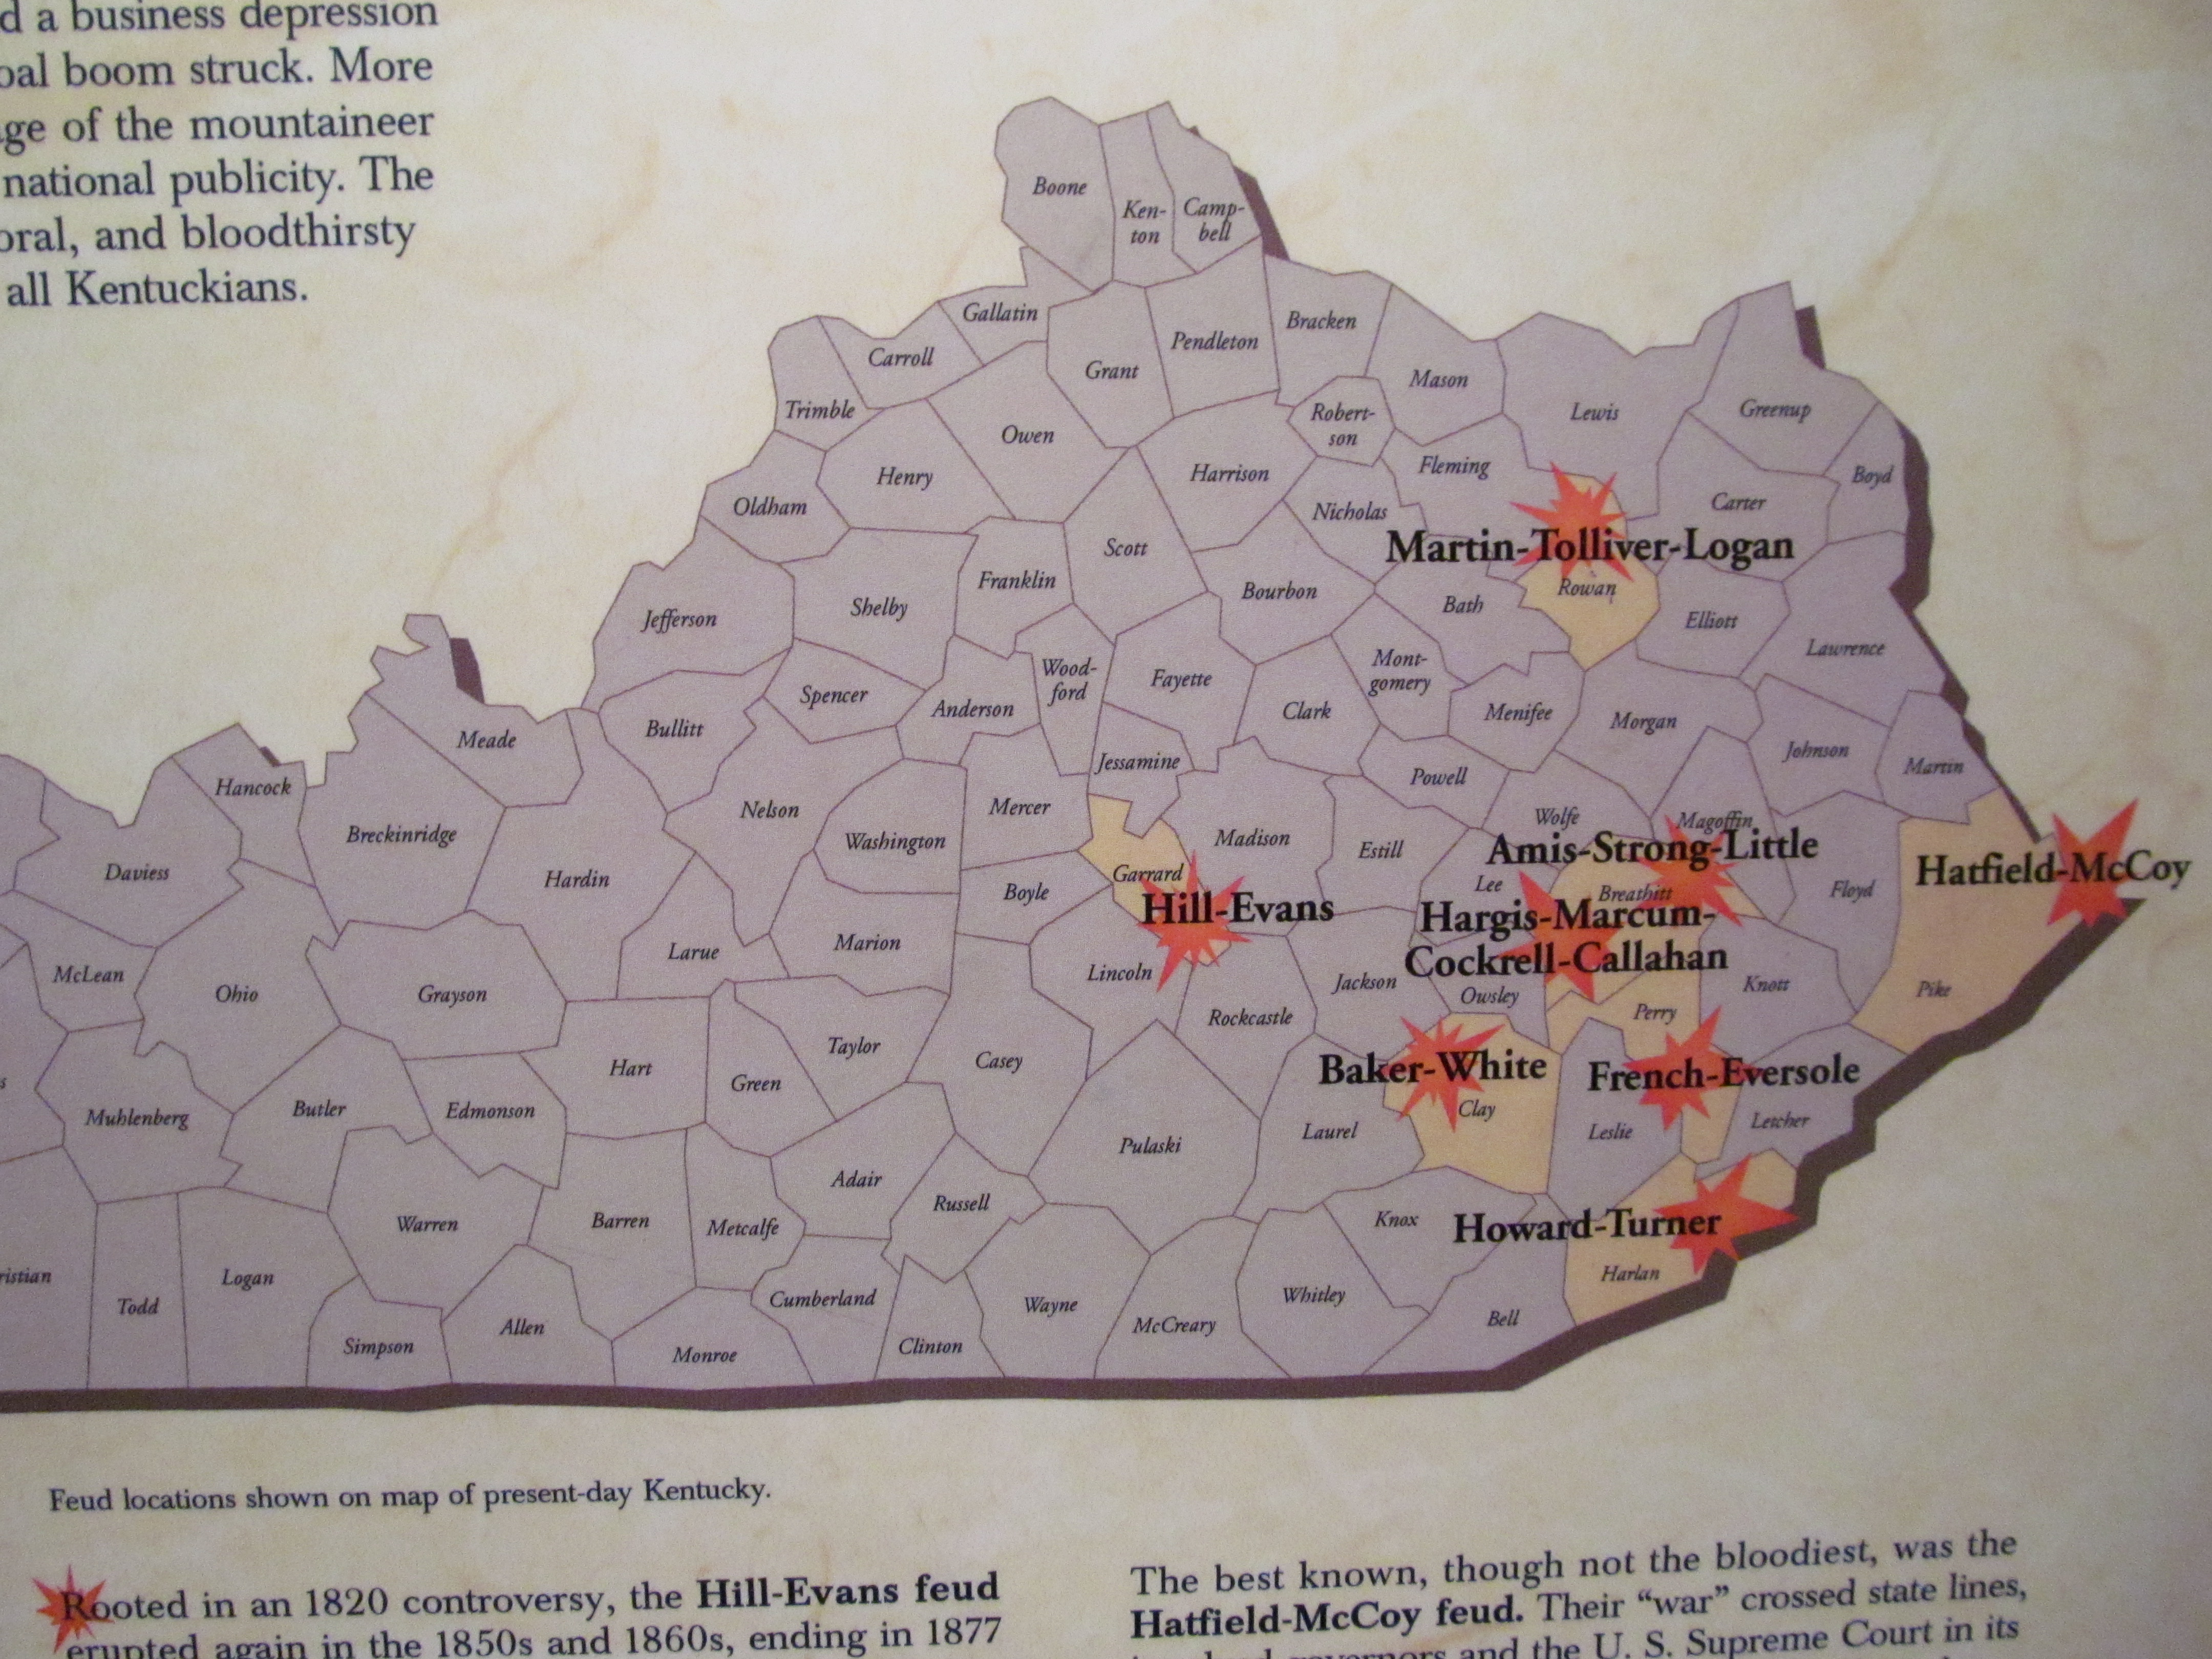 Learn About the Kentucky Feuds at the Kentucky History Center